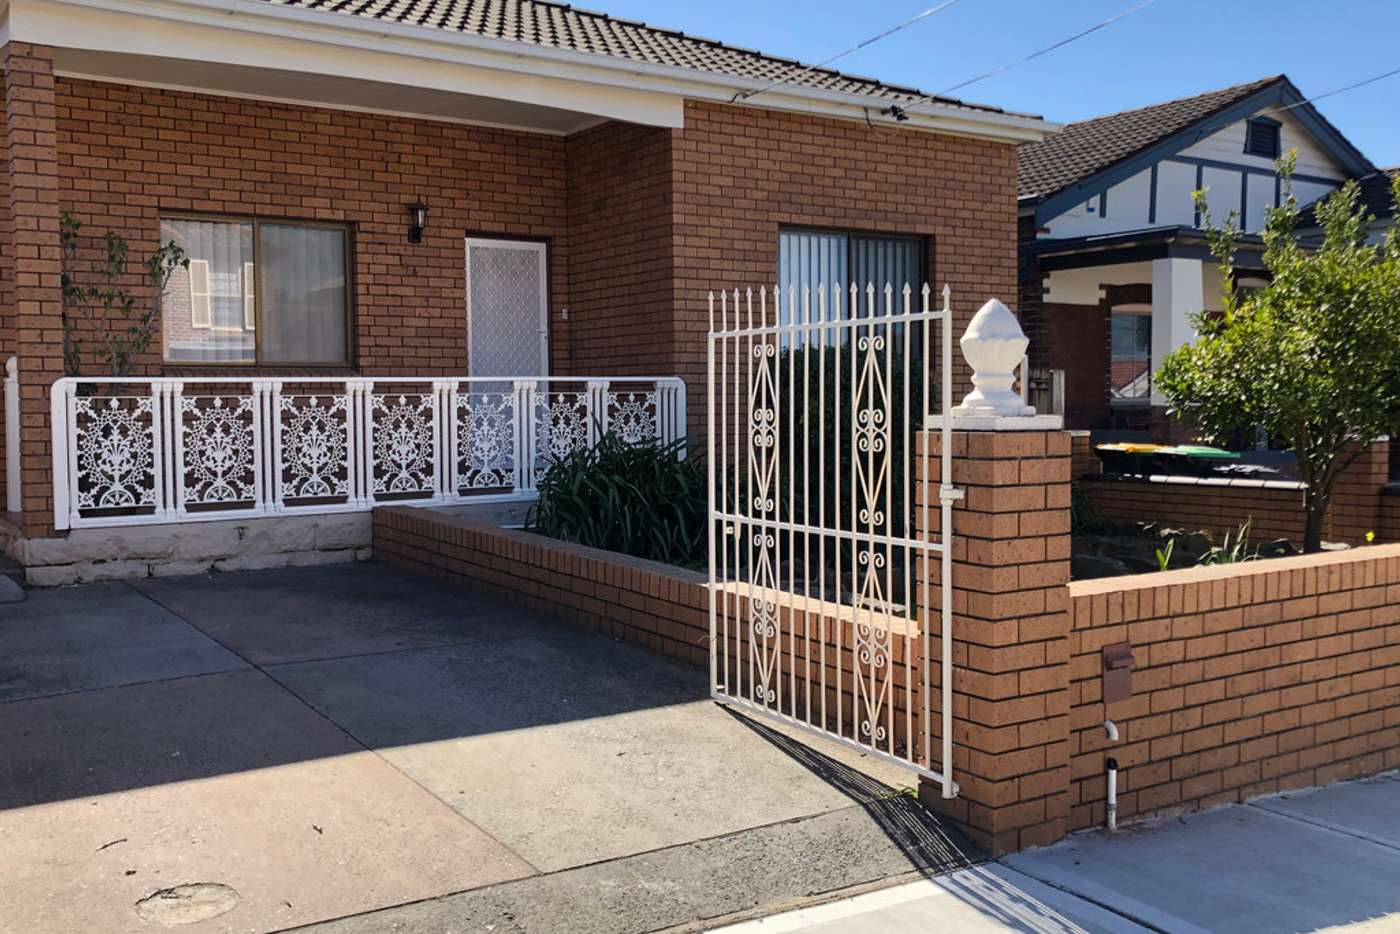 Main view of Homely house listing, 24 Tangarra Street, Croydon Park NSW 2133